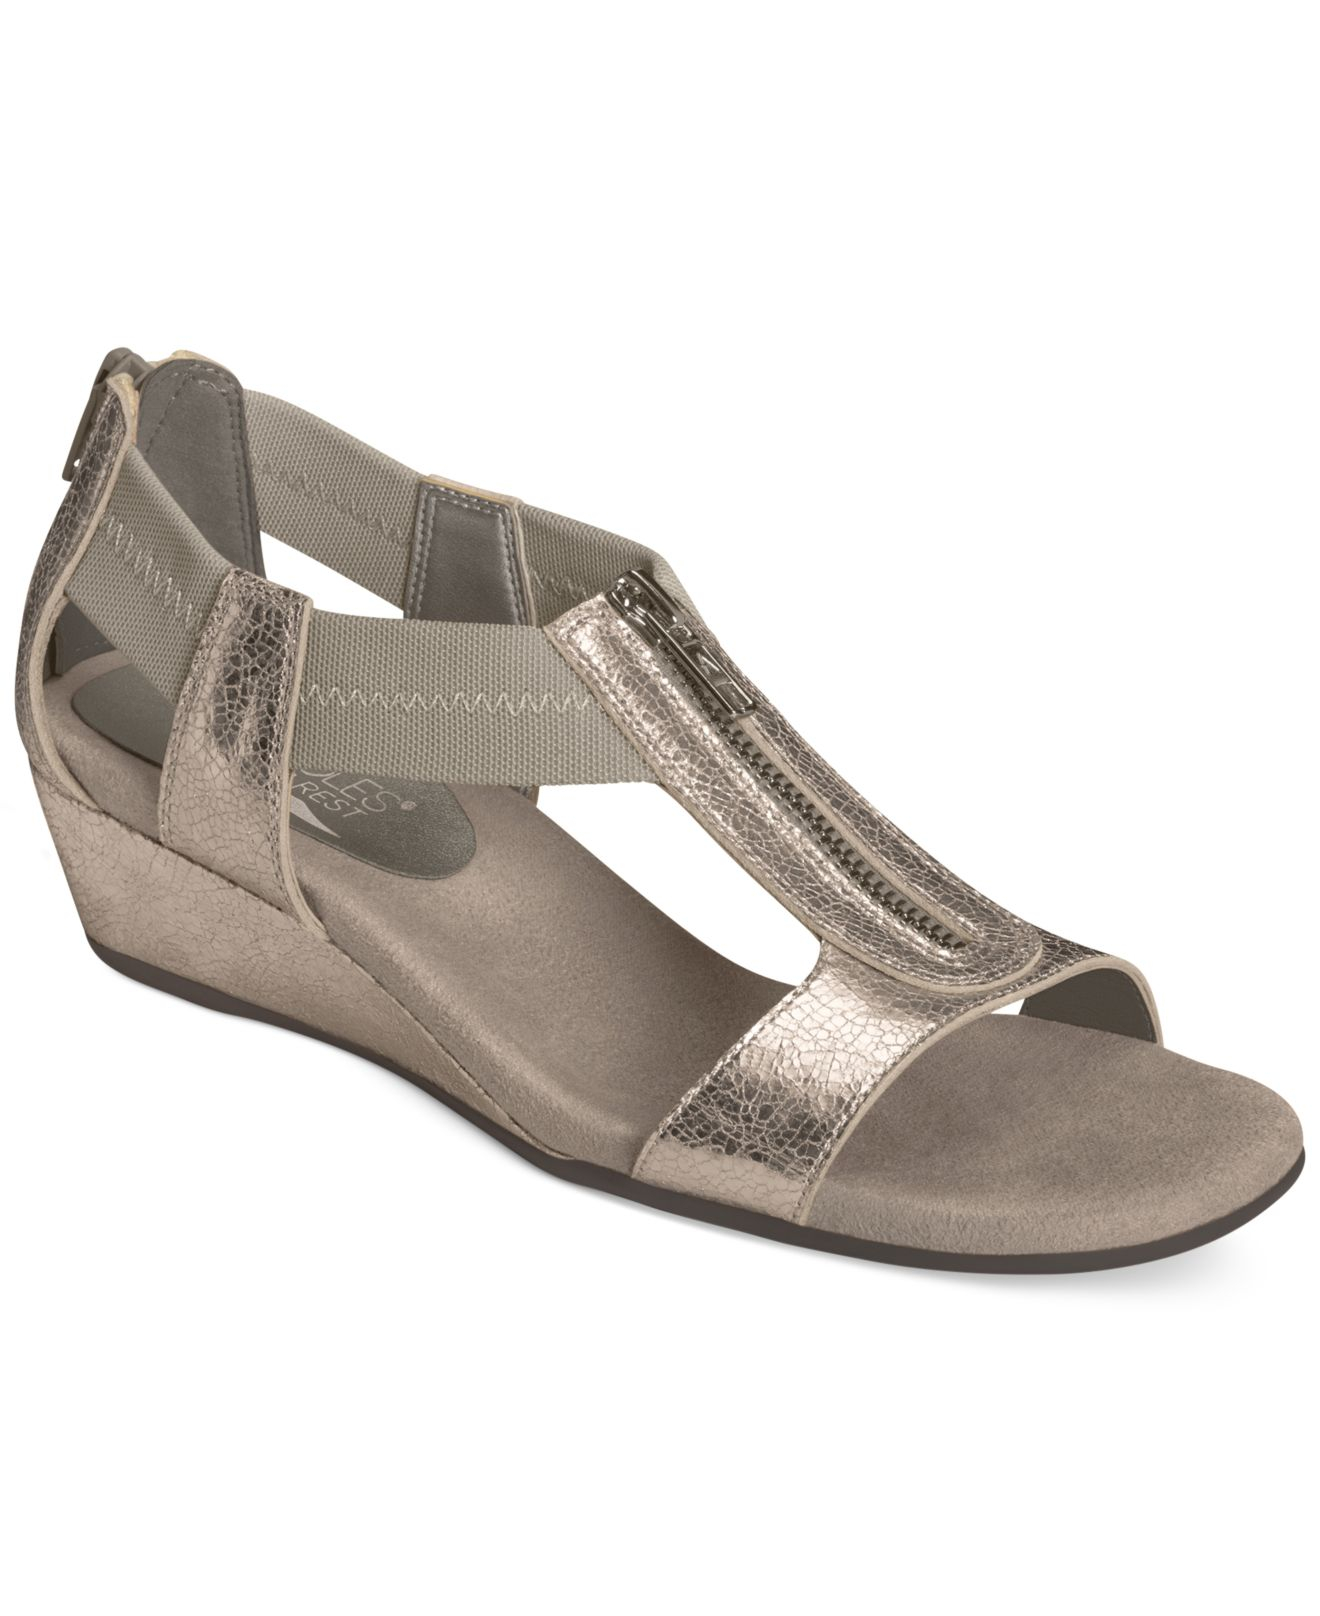 Buy Aerosoles Women's High Hopes Dress Sandal and other Flip-Flops at hotlvstore.ga Our wide selection is eligible for free shipping and free returns.